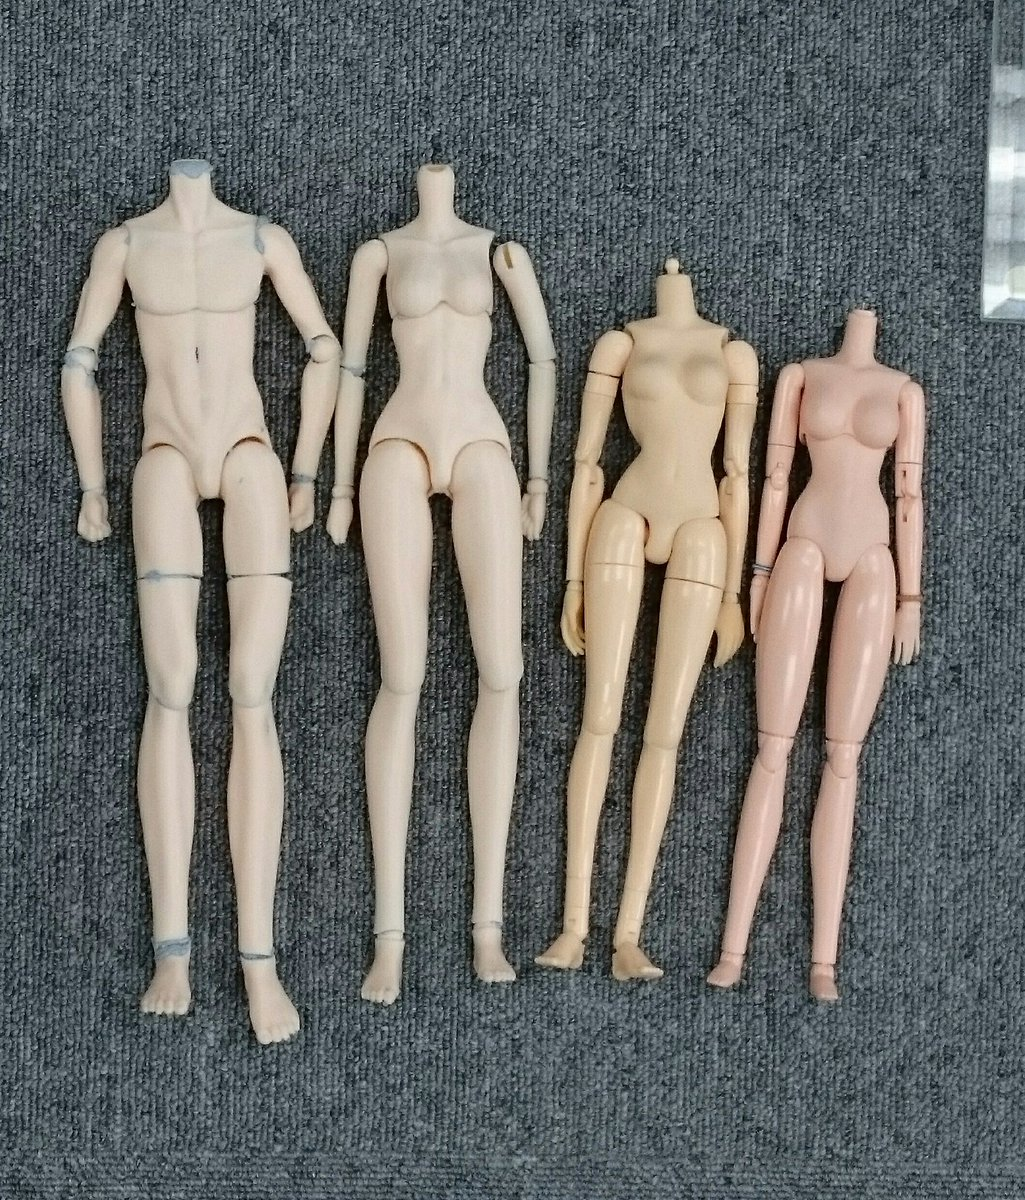 [Smart Doll] Smart doll pocket (taille 1/6) - Page 3 CaG7l0XUYAAPCJI